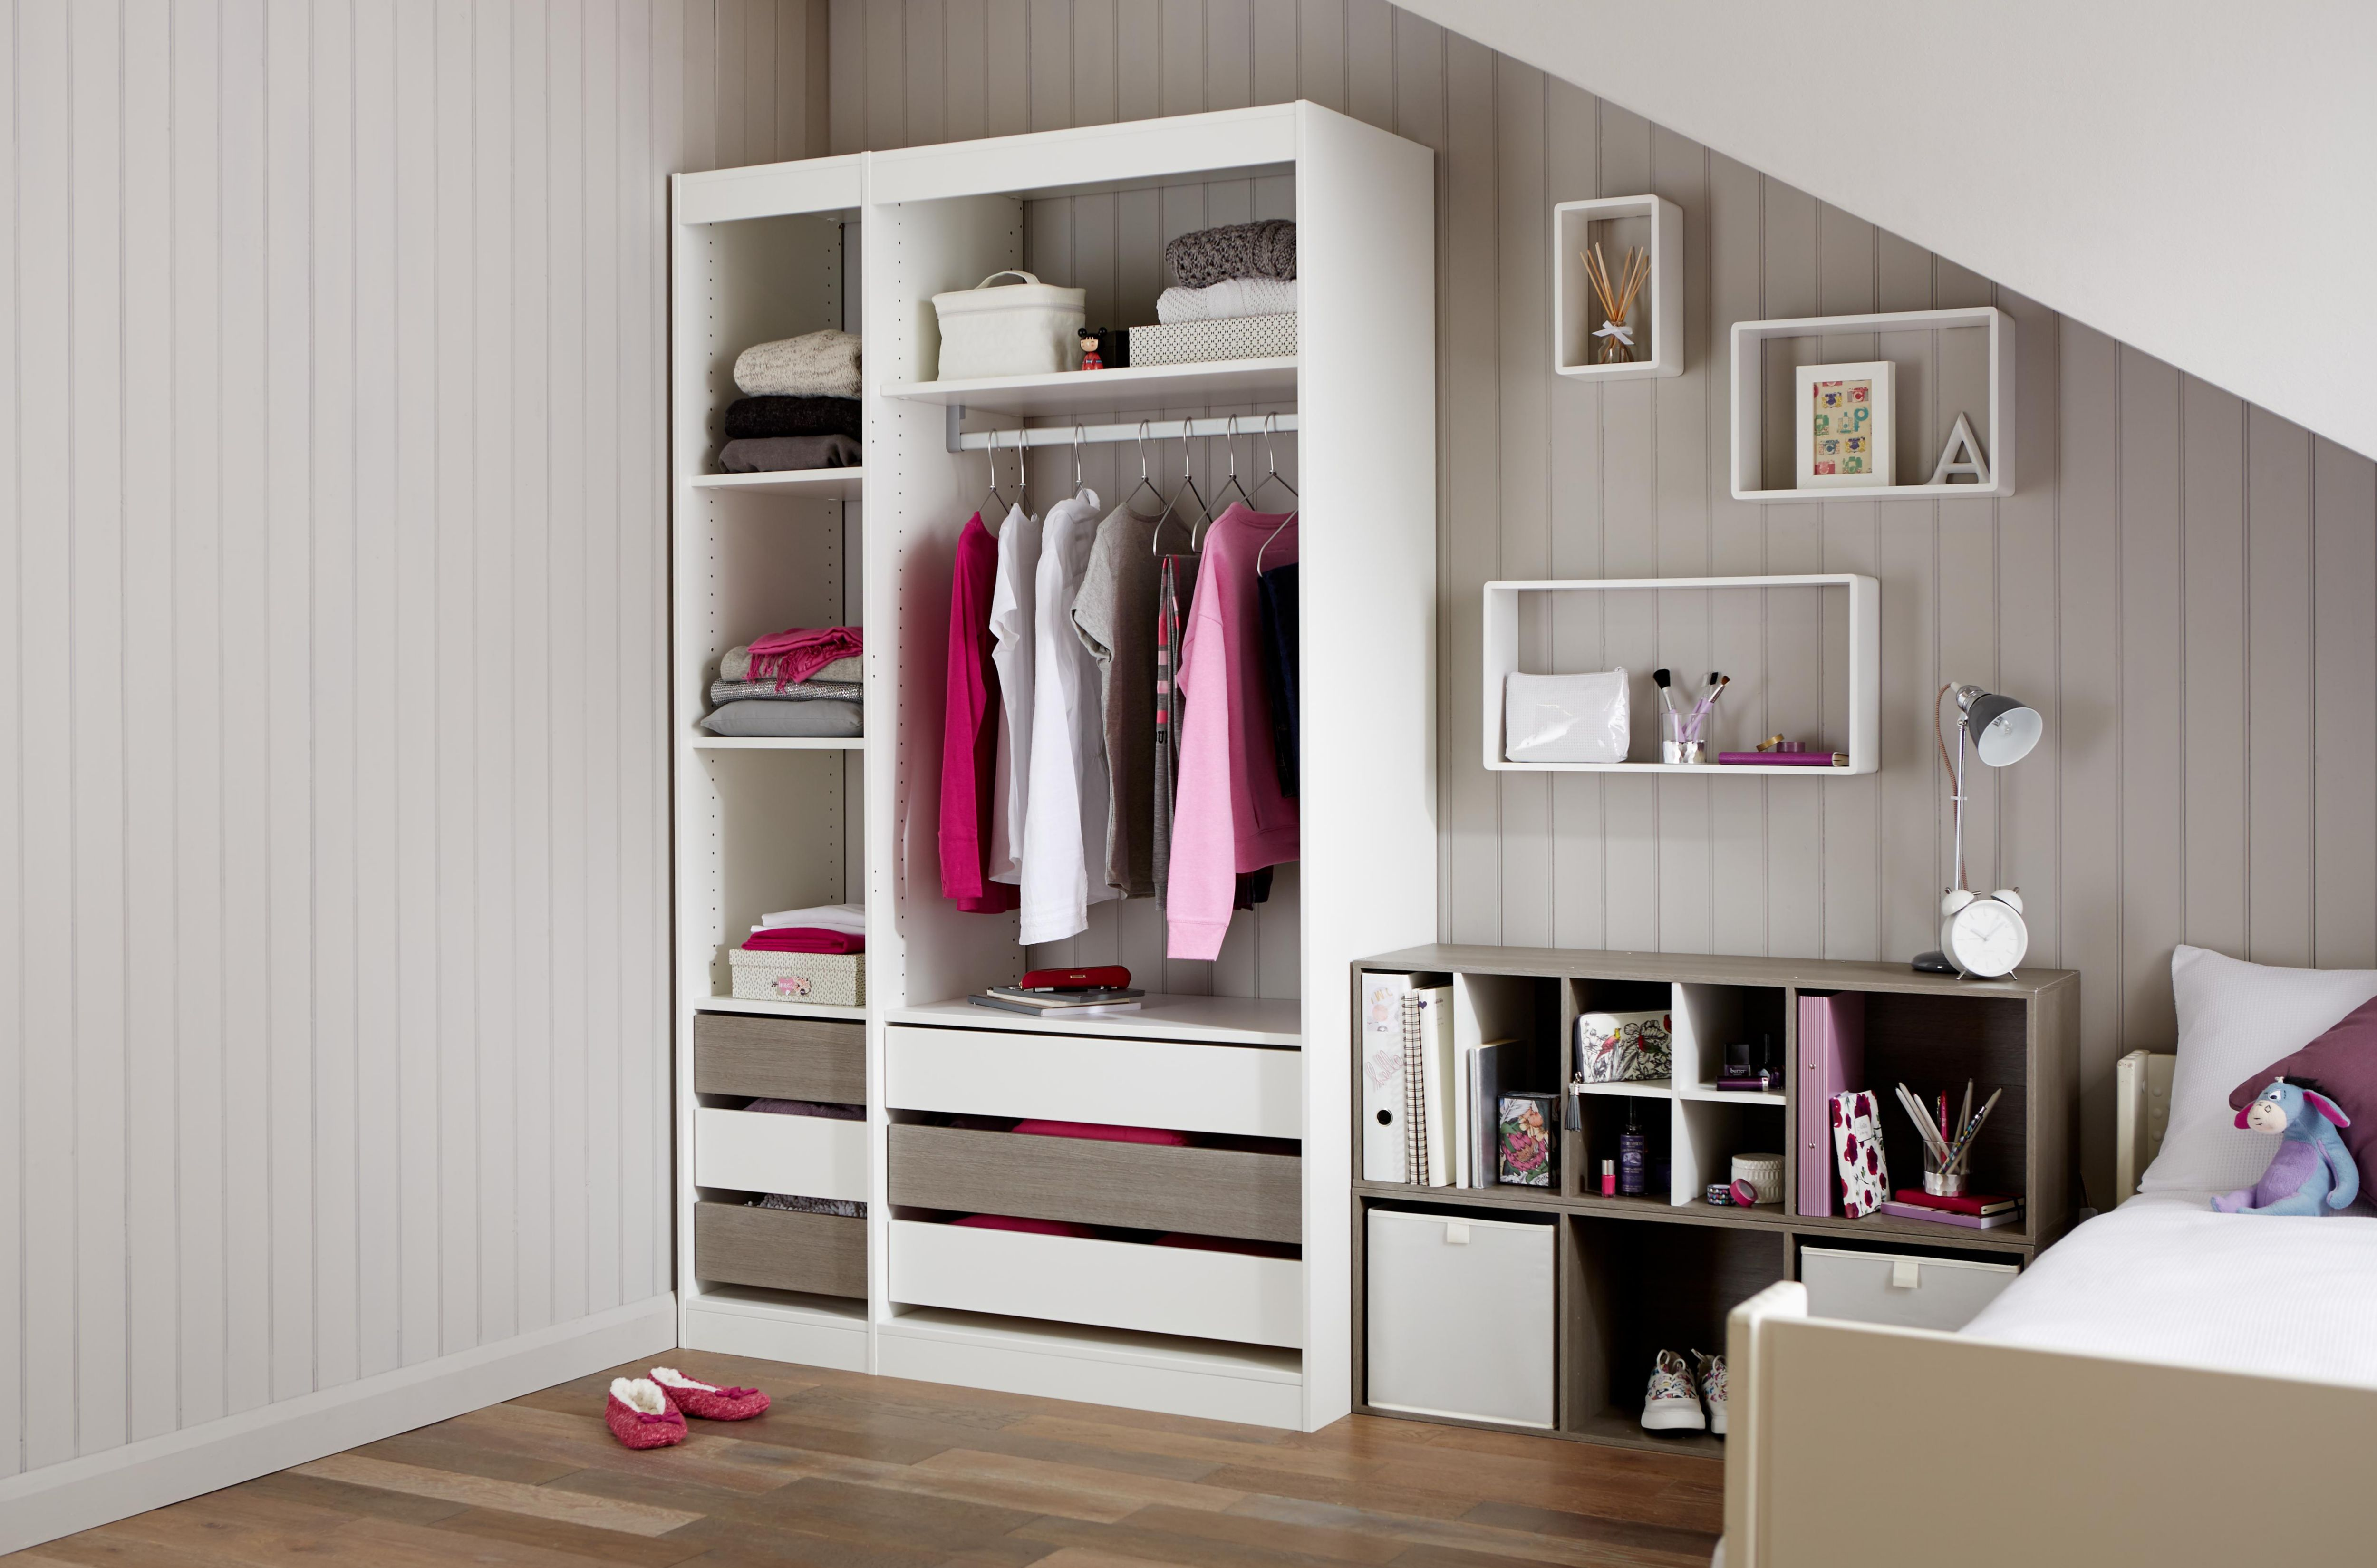 Perkin Grey oak & white wardrobe storage